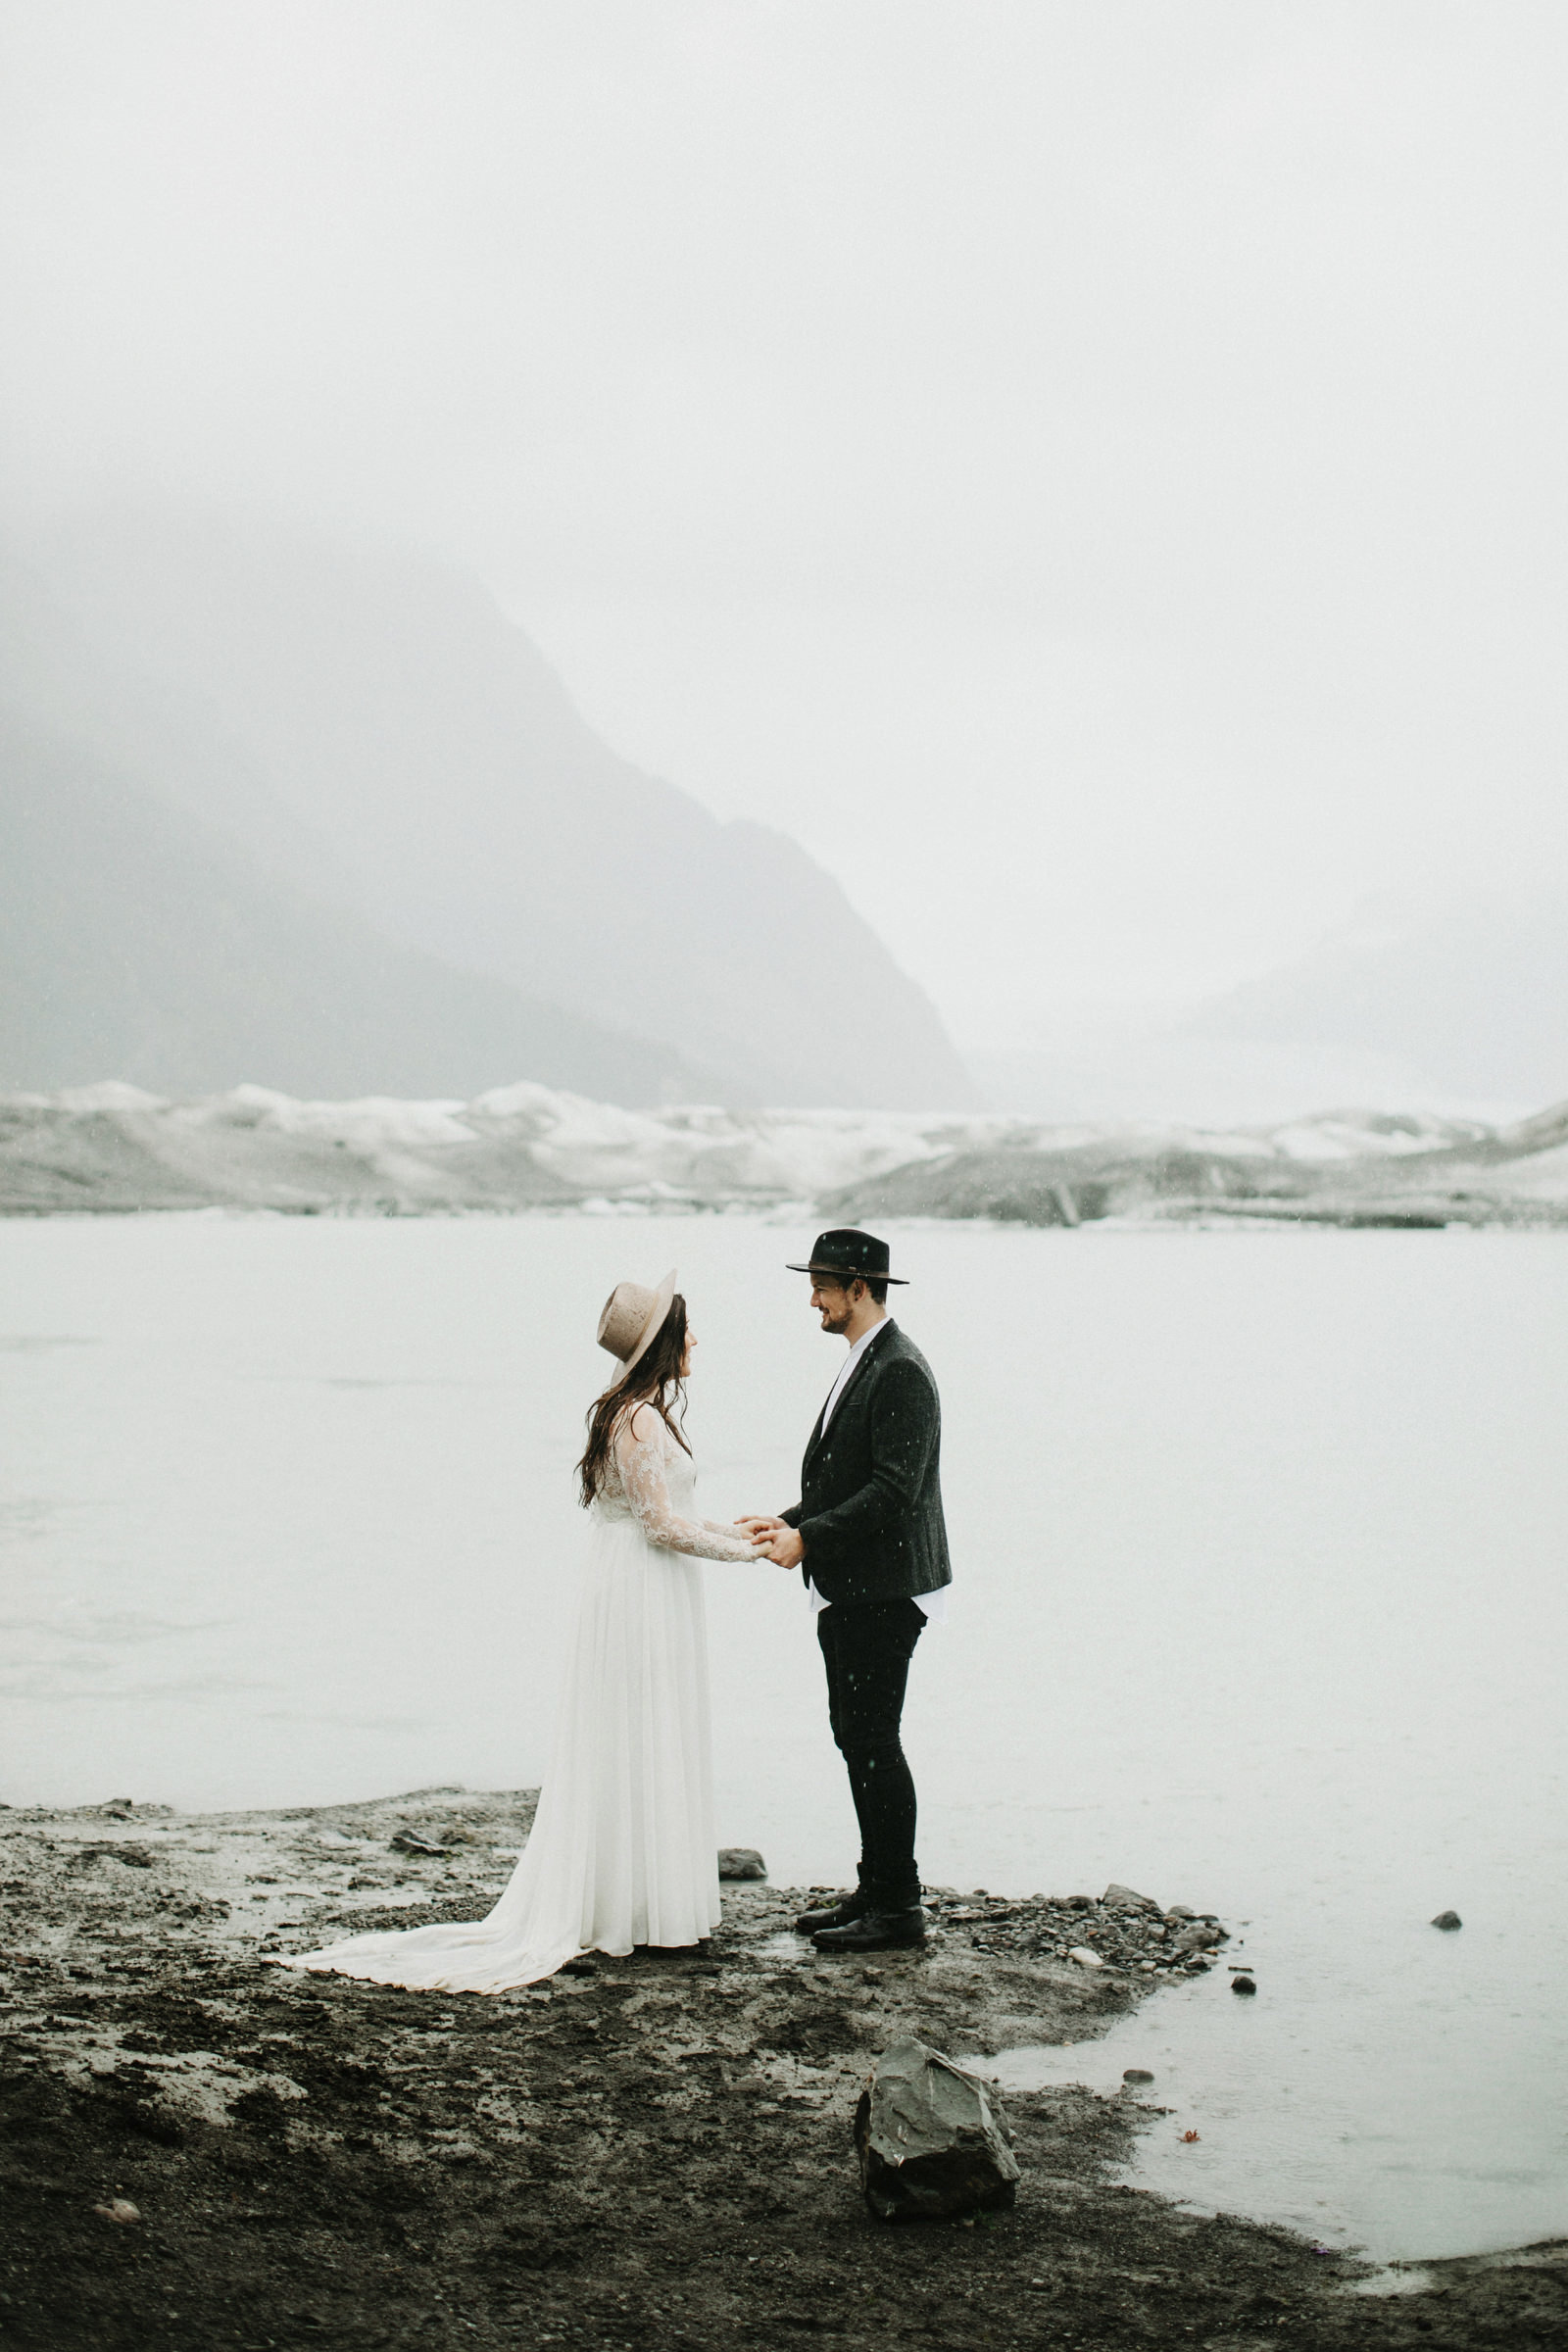 athena-and-camron-alaska-elopement-wedding-inspiration-india-earl-athena-grace-glacier-lagoon-wedding92